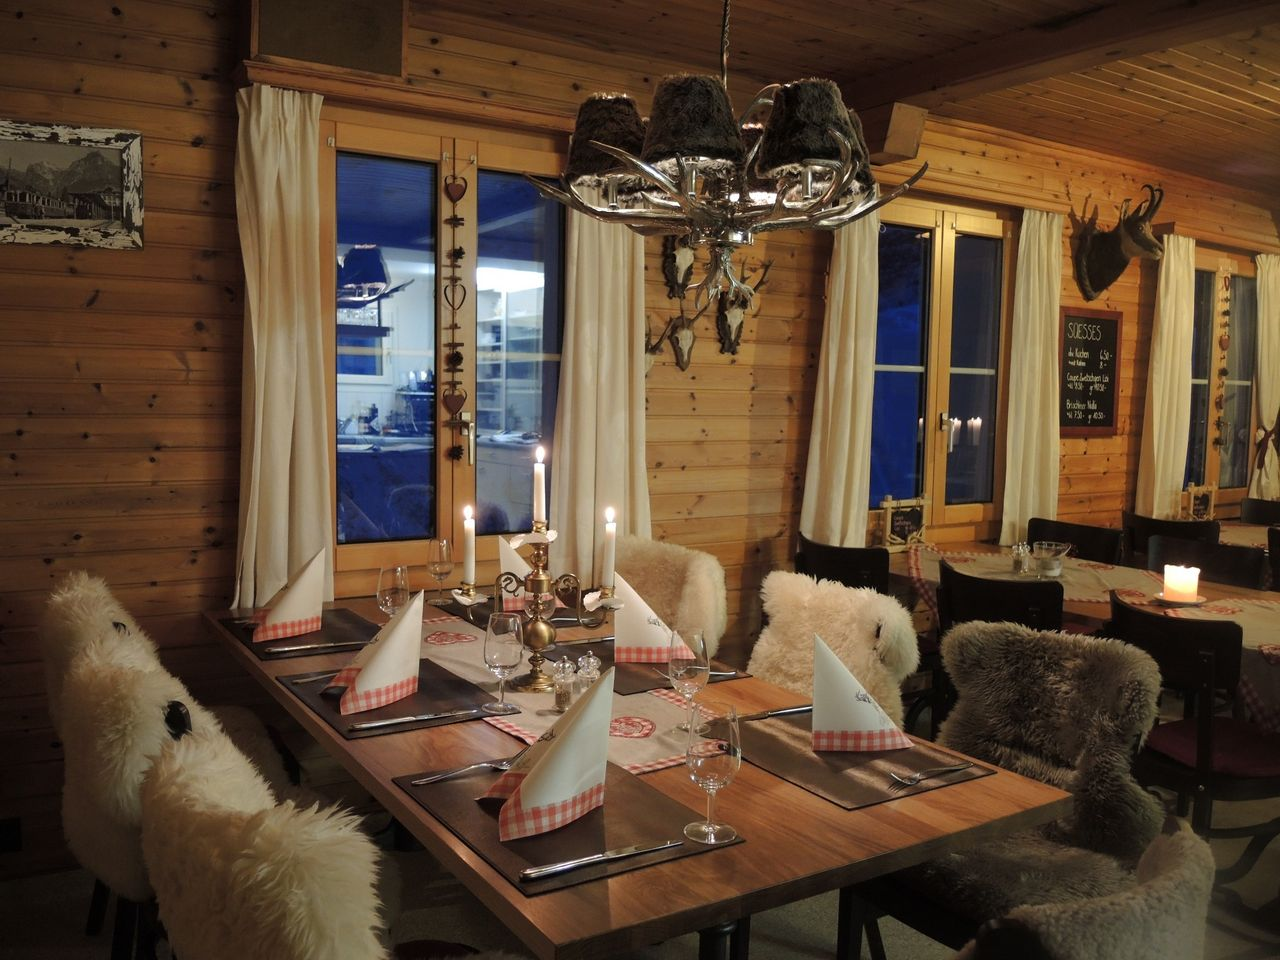 Bergrestaurant Fürenalp